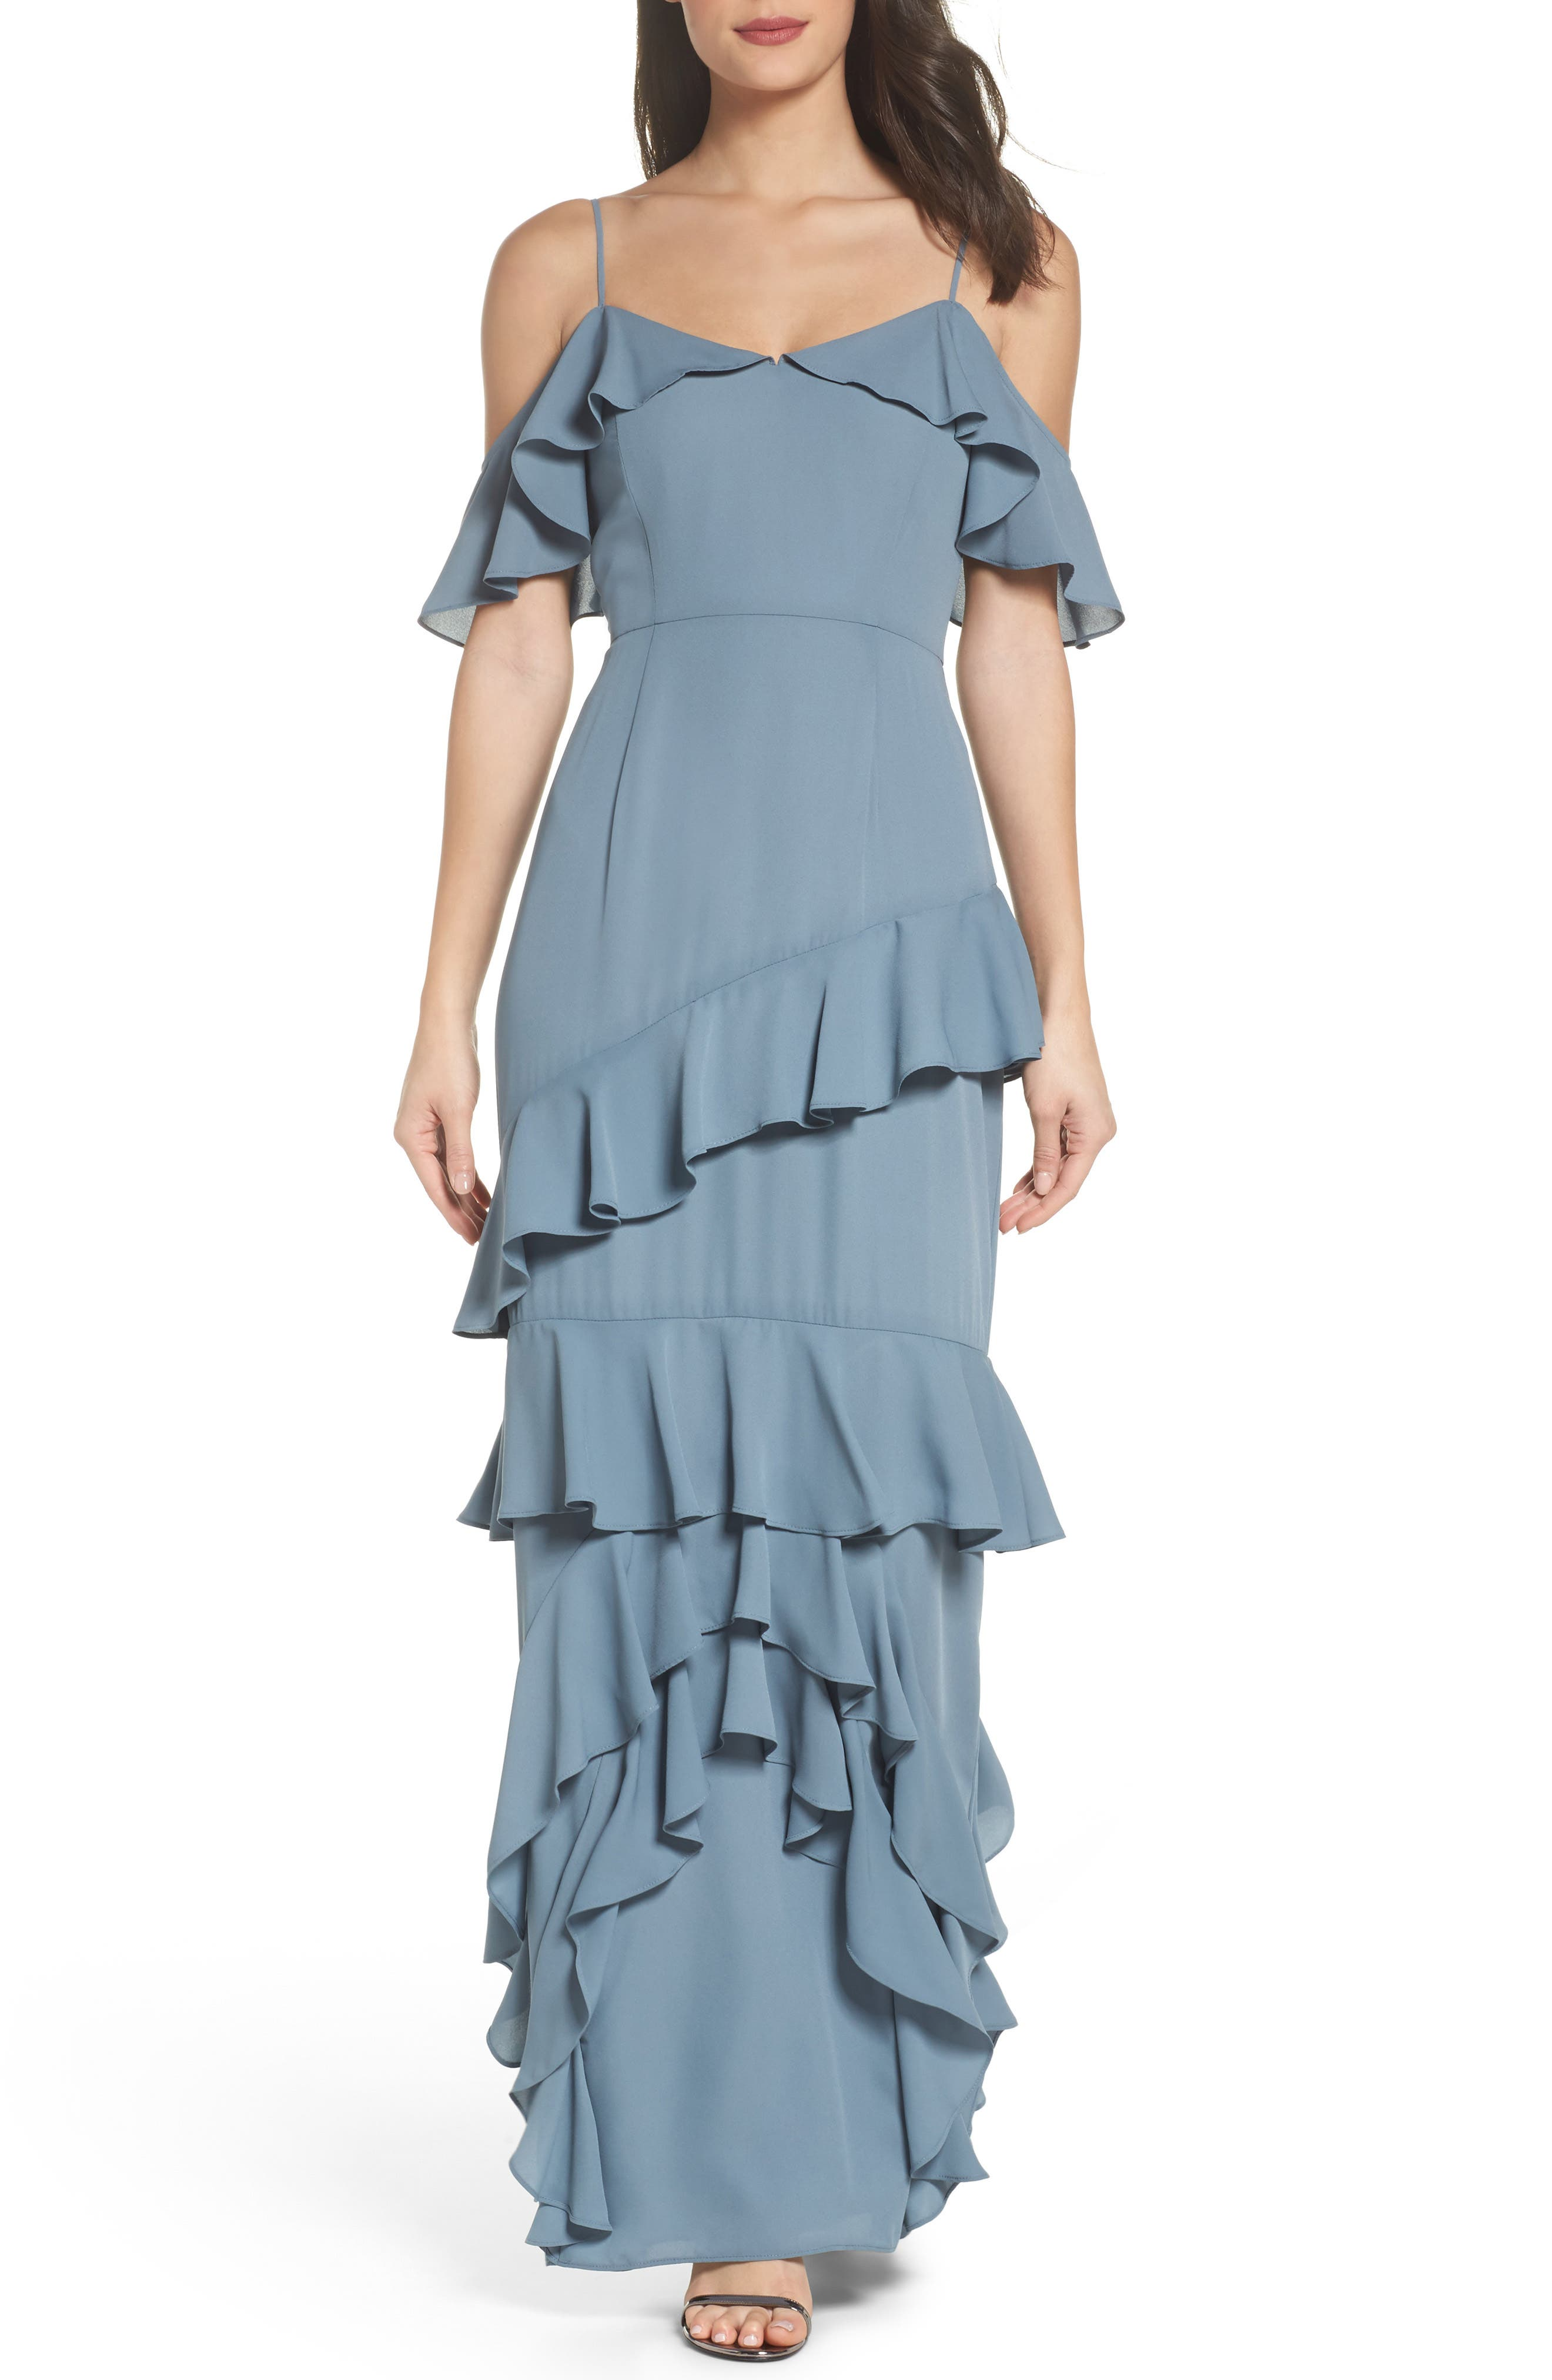 Danielle Off the Shoulder Tiered Crepe Dress,                         Main,                         color, 020